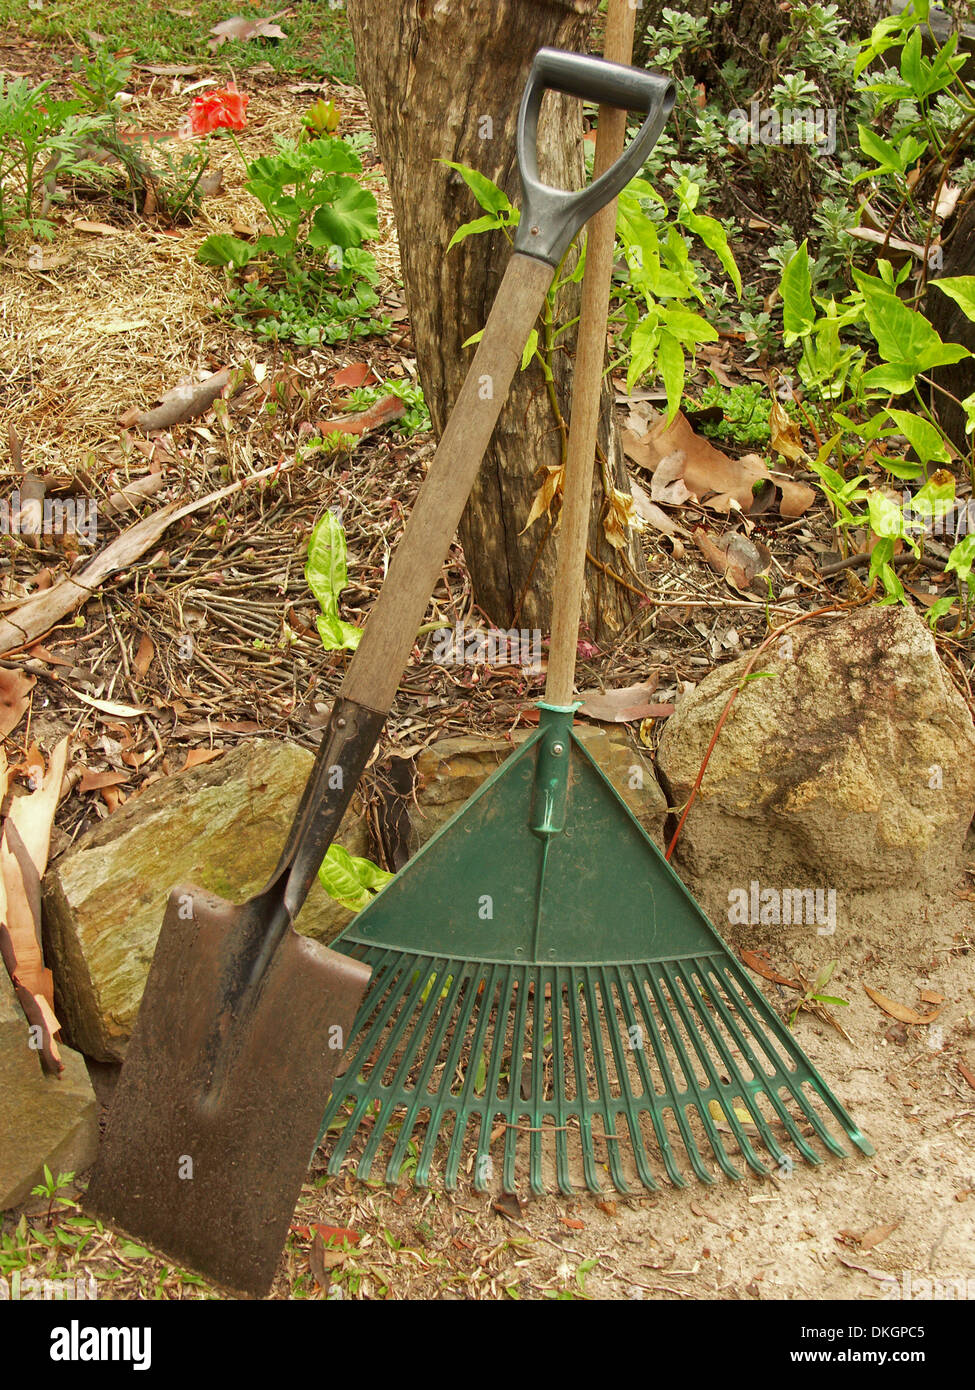 Common Gardening Tools Plastic Leaf Rake And Spade Leaning